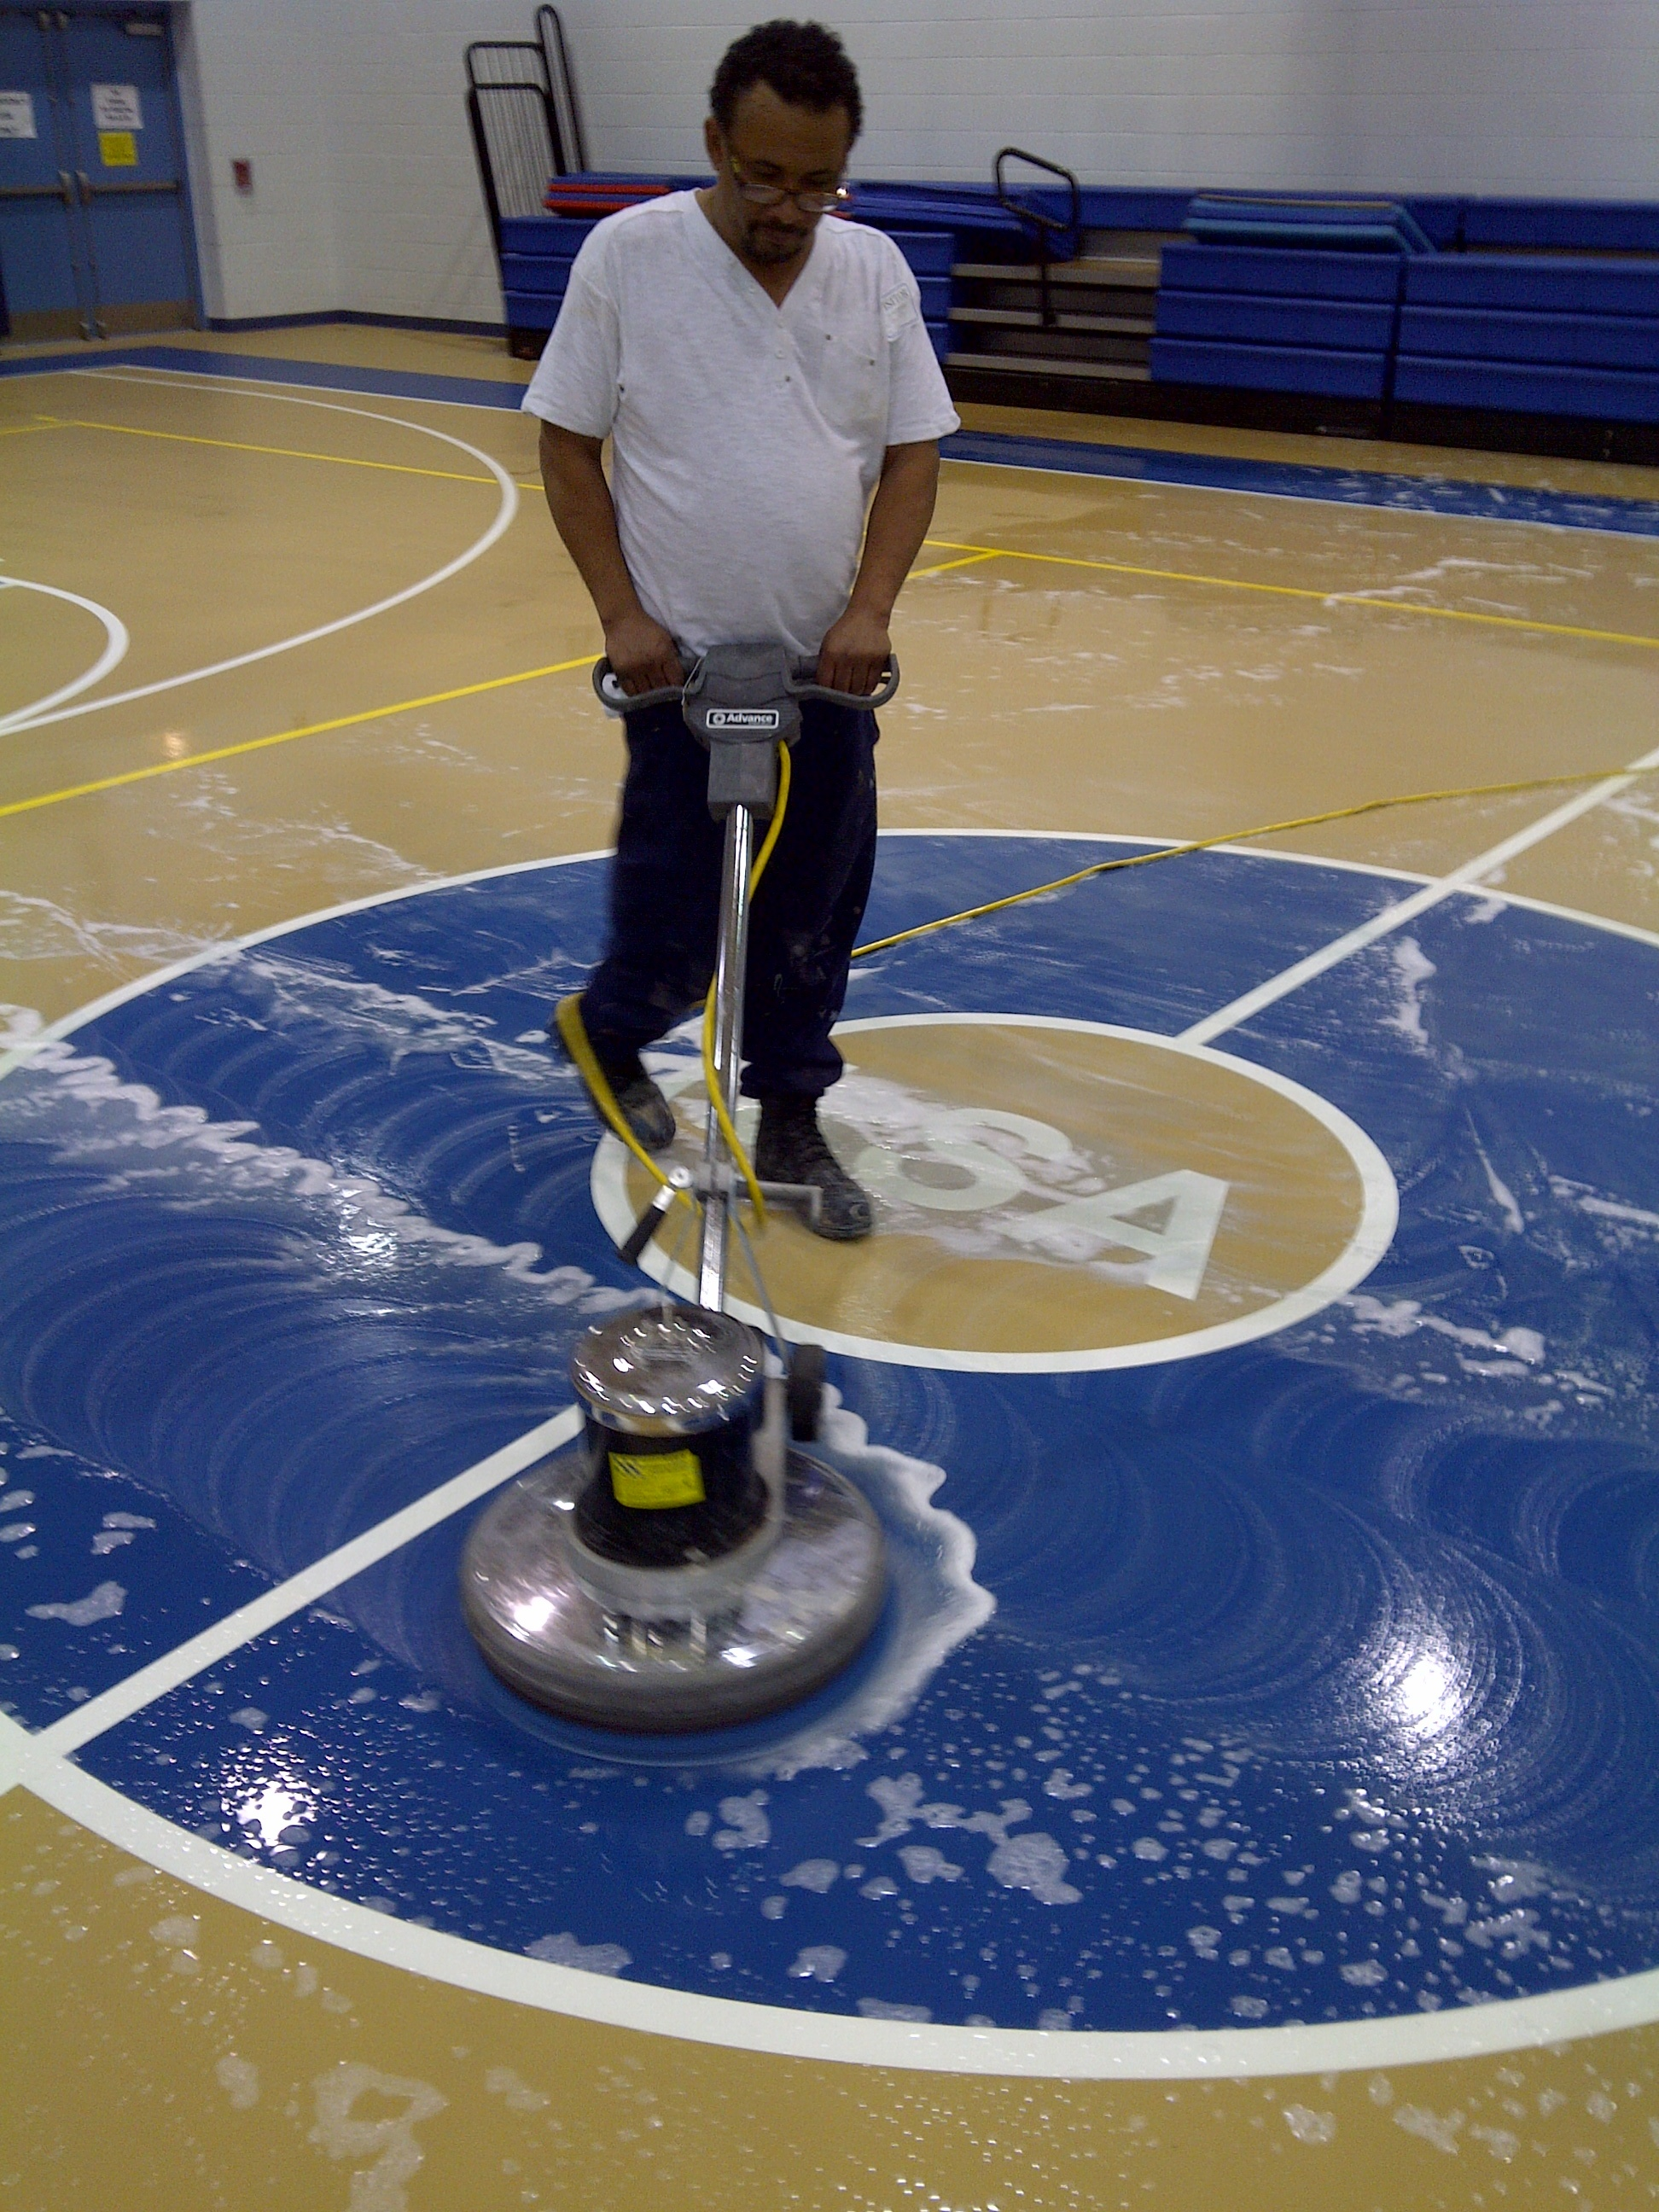 Cleaning A Slippery Floor Commercial Floor Cleaning And